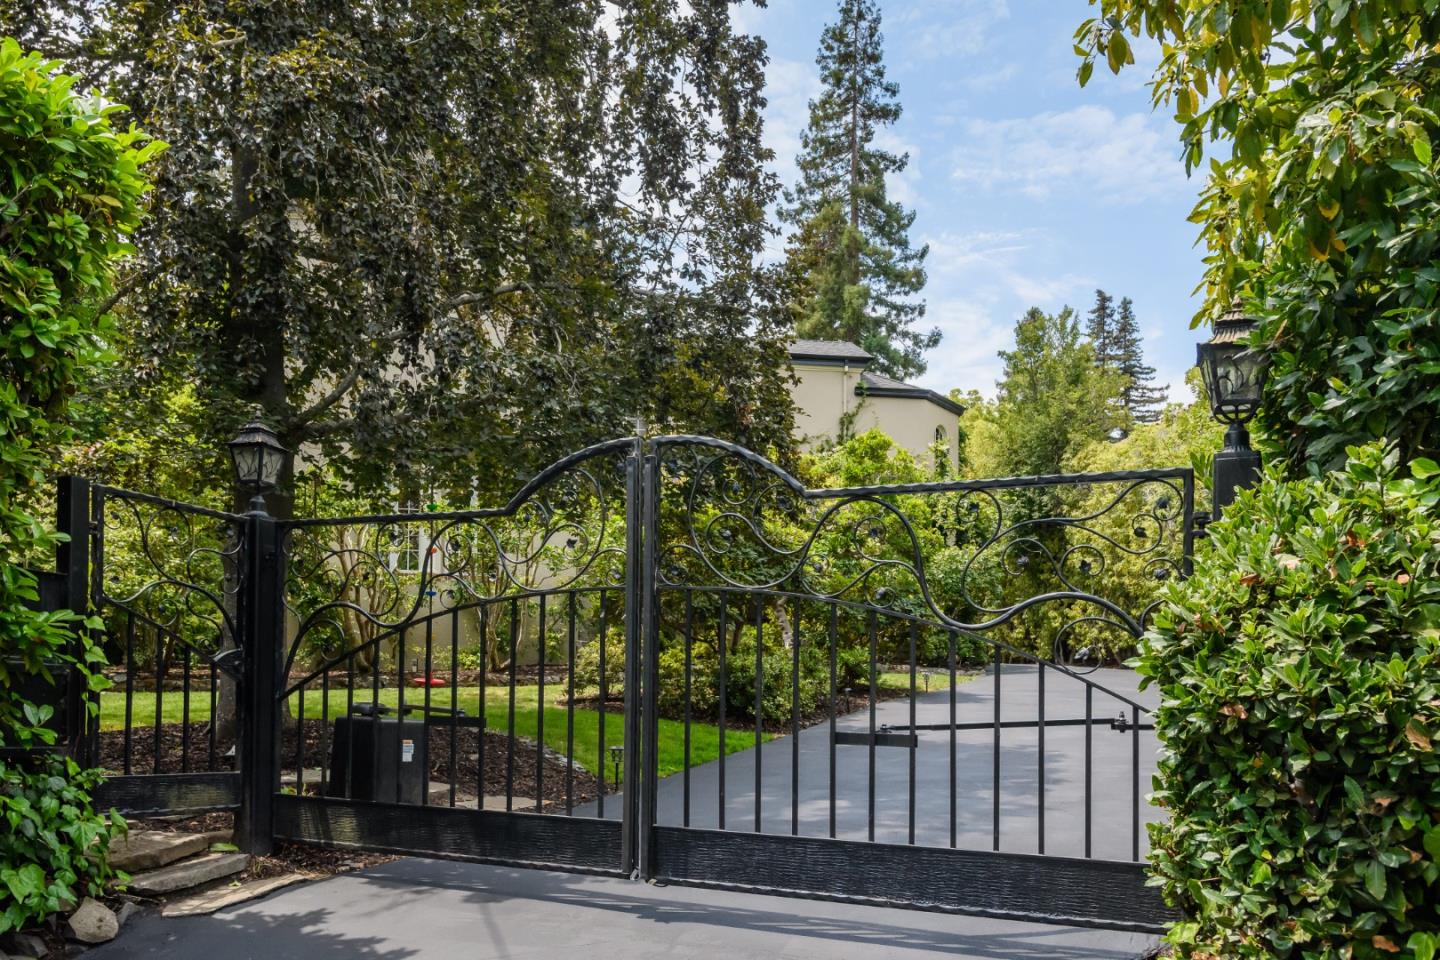 Guarded by an intricate wrought-iron gate, this beautiful residence in coveted Lower South Hillsborough arcs around to a stone terrace courtyard and vine-covered pergola, a romantic setting that steps down to a spacious grassy yard and lush landscaping. Inside, details abound - crown molding, paneling, wainscoting - while numerous windows and French doors usher in light. The foyer leads to a spacious living room with a fireplace, then into a library with courtyard access. Entertain in the sophisticated formal dining room or host in the exquisitely remodeled gourmet kitchen, with new countertops, backsplash tile & Viking appliances amid a butlers pantry and storage. Just off the kitchen lies a dedicated office, as well as a breakfast nook and a mudroom connecting to the terrace. Then, climb up the distinctive staircase to choose among 5 generously-sized bedrooms, 4 of which are en-suites - each bath tastefully renovated with marble and heated floors. (County Records shows 4BR/4.5BA)